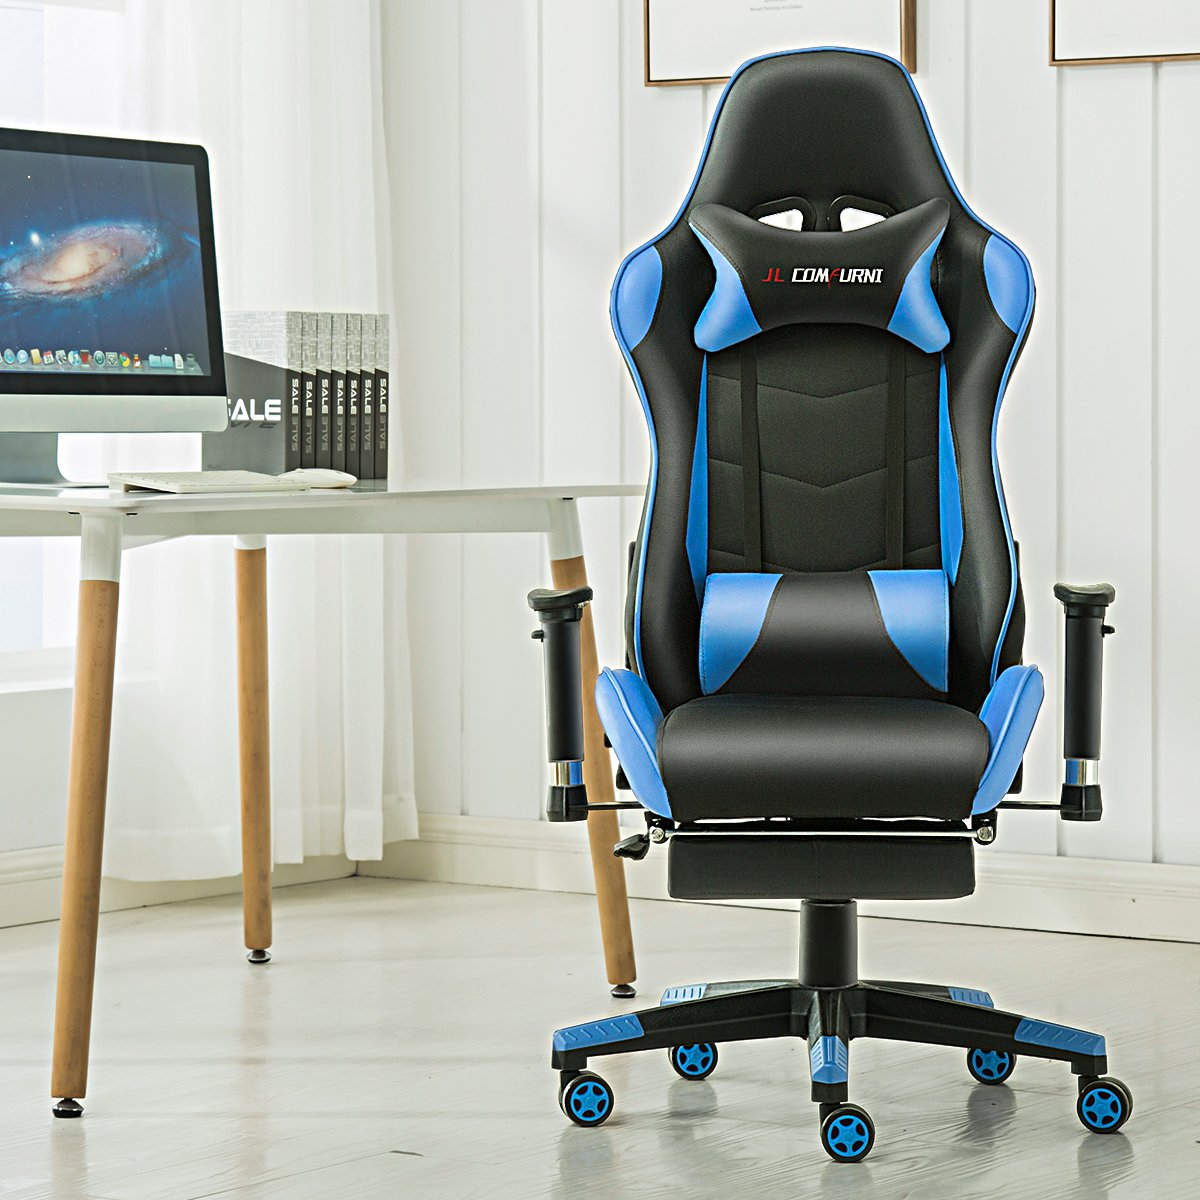 Jl Comfurni Gaming Chair Chesterfield Ergonomic Swivel Home Office Nap Prodstop Au